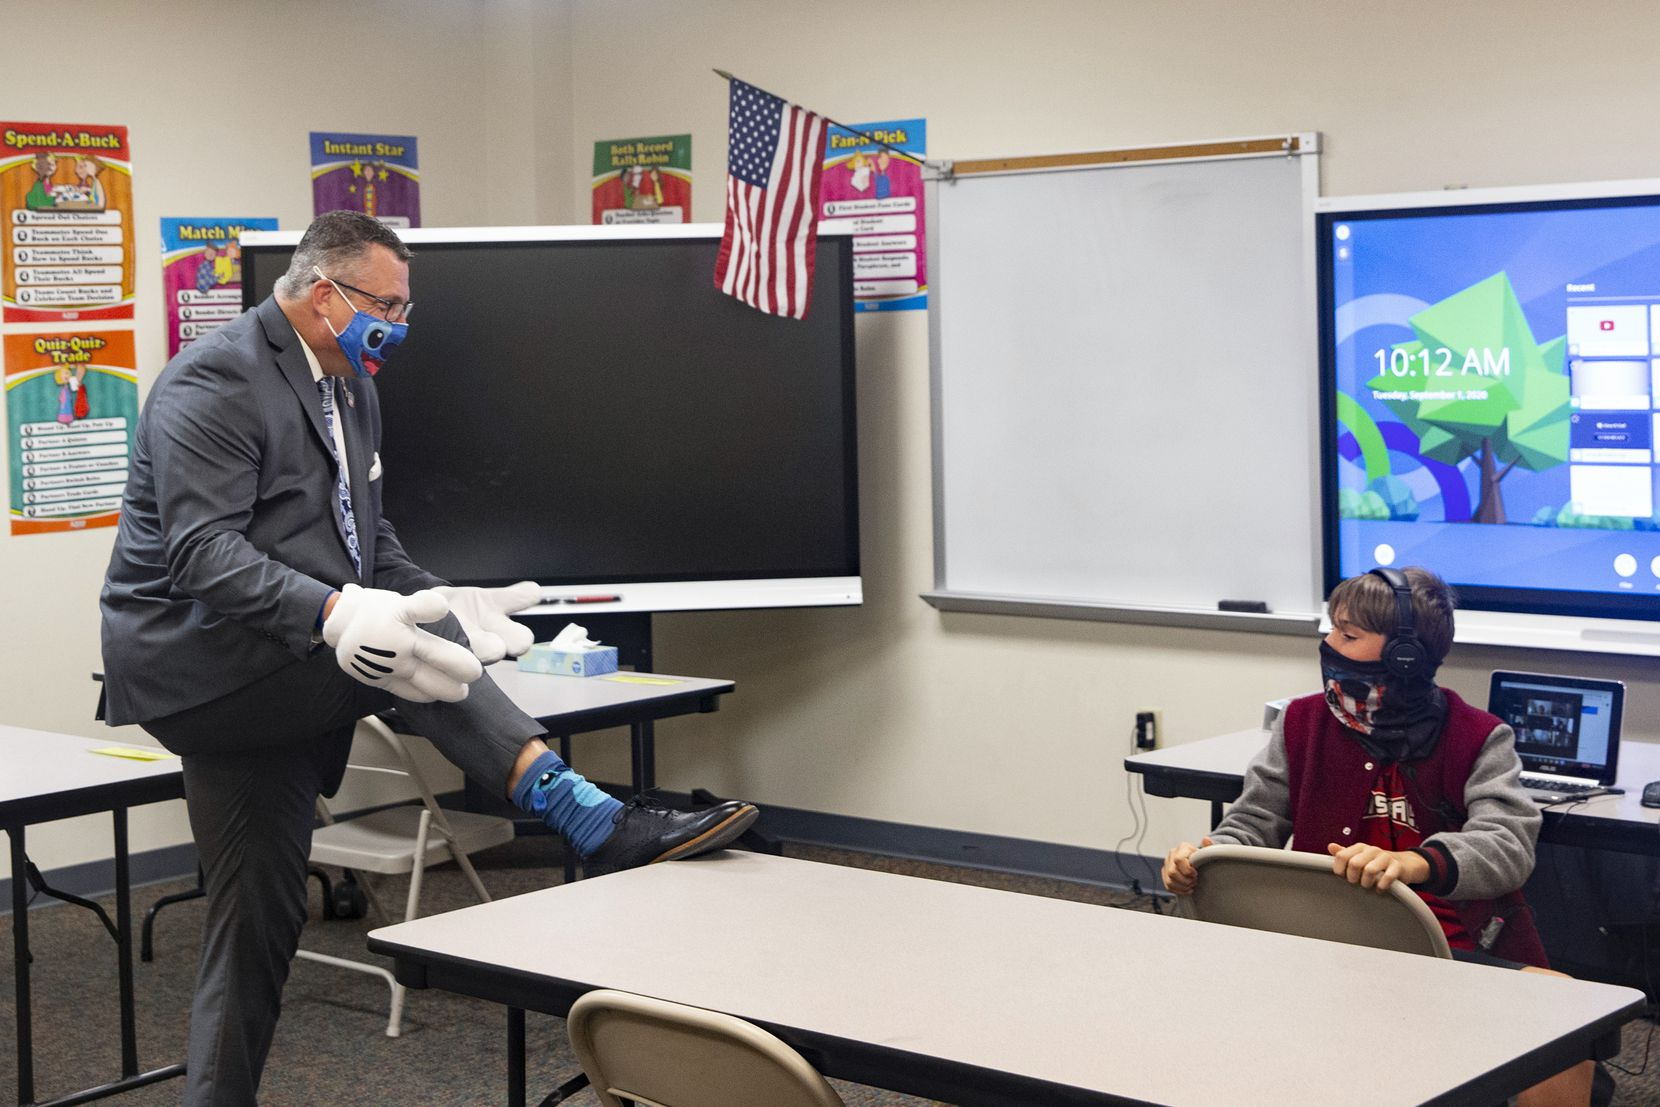 Superintendent Dr. Michael Goddard (left) shows off his playful socks to sixth-grade student Major Morris during a visit to employee children at Carrie L. Lovejoy Elementary School in Allen on Sept. 1. The district provided in-person child care and instruction for the children of some district employees who had to physically report to work at the beginning of the school year during the coronavirus pandemic.